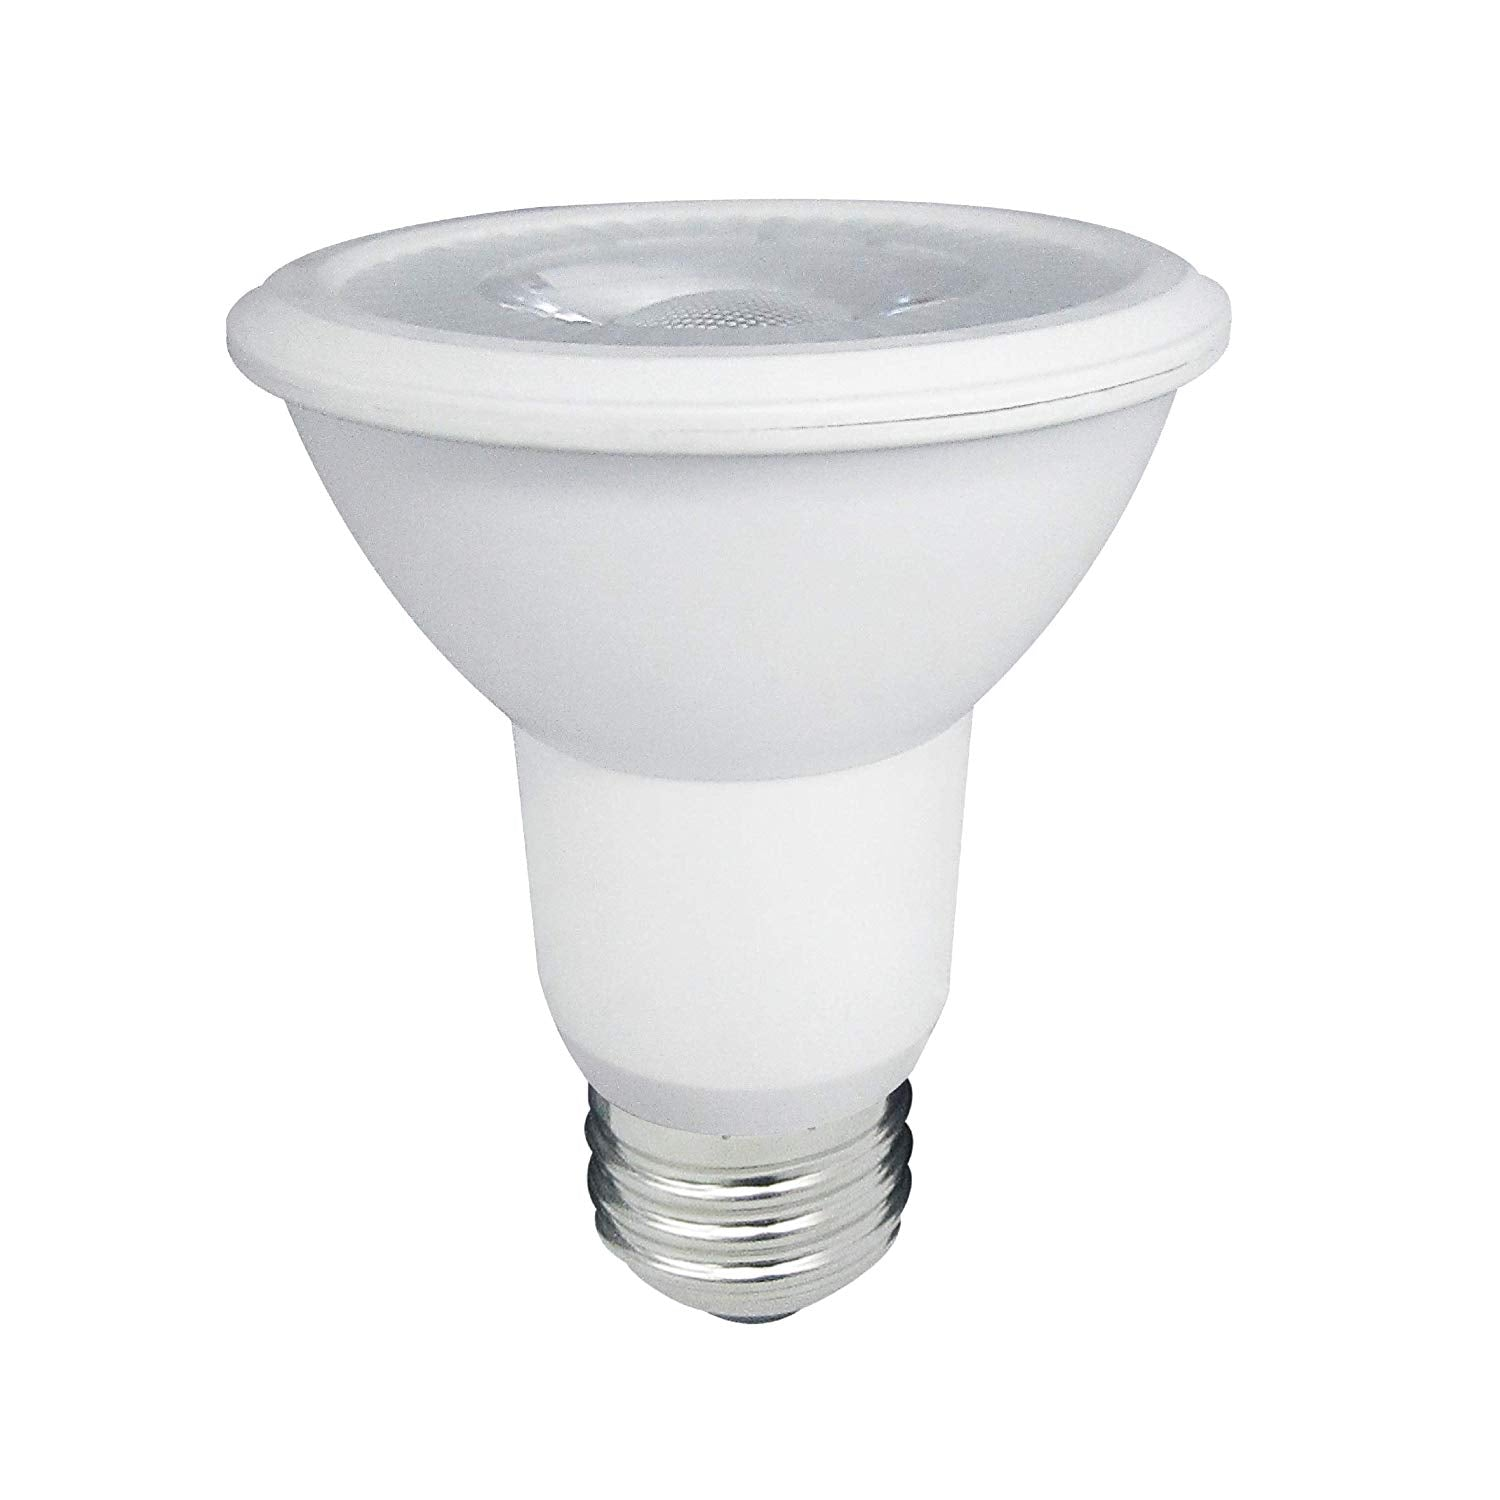 QPlus LED Light Bulb PAR20